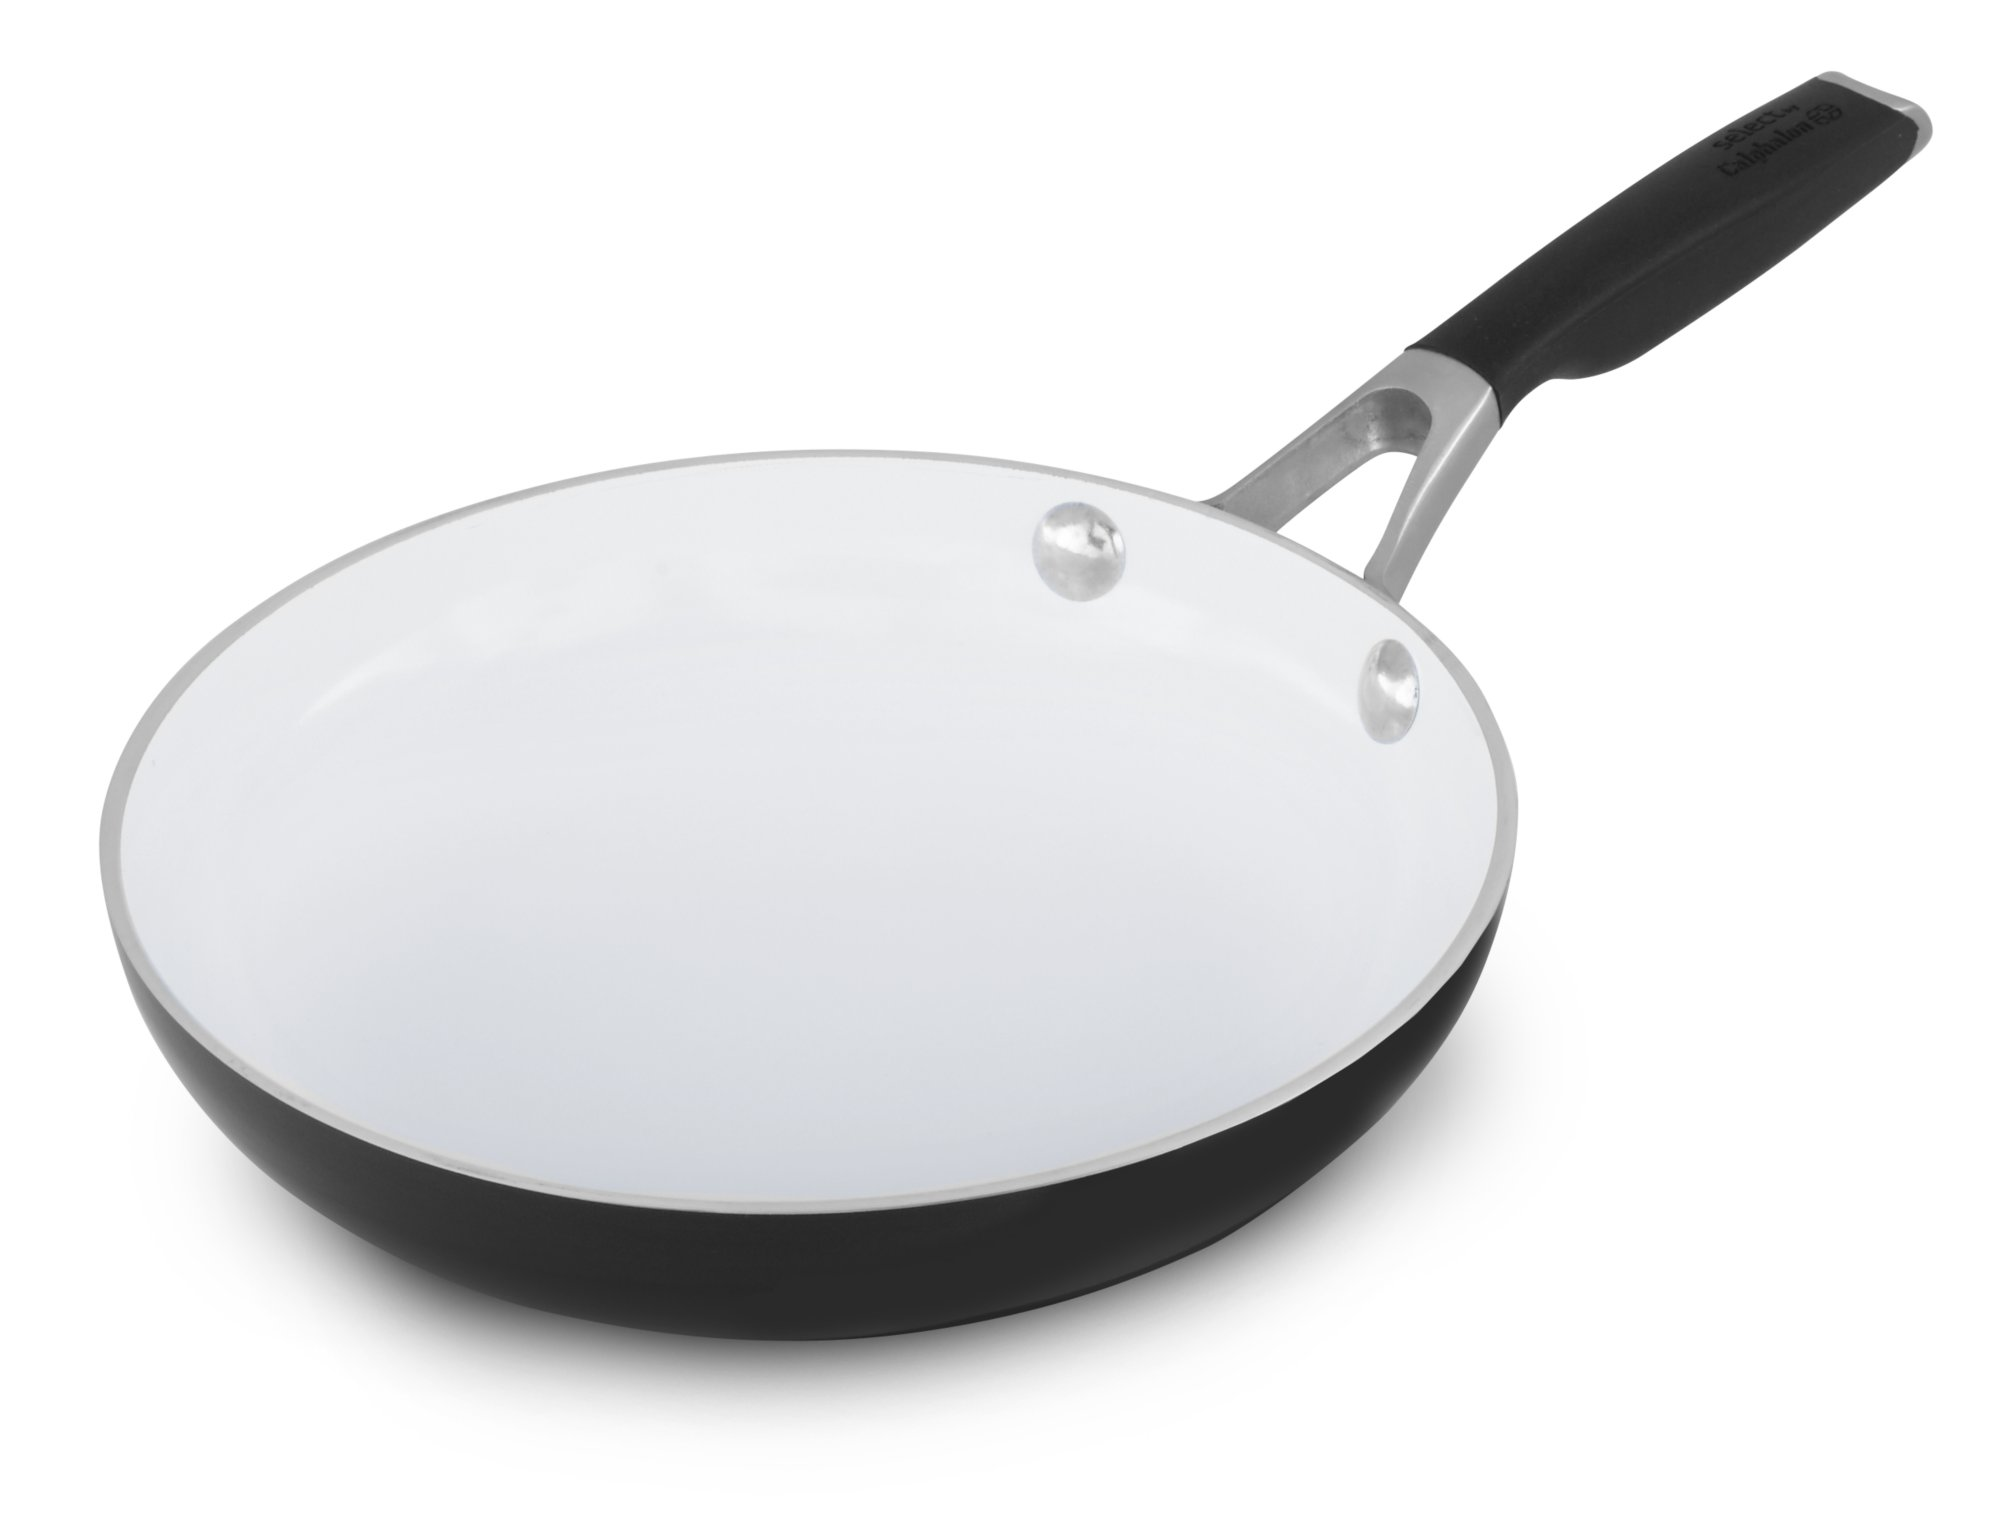 Select by Calphalon Ceramic Nonstick 8-Inch Fry Pan